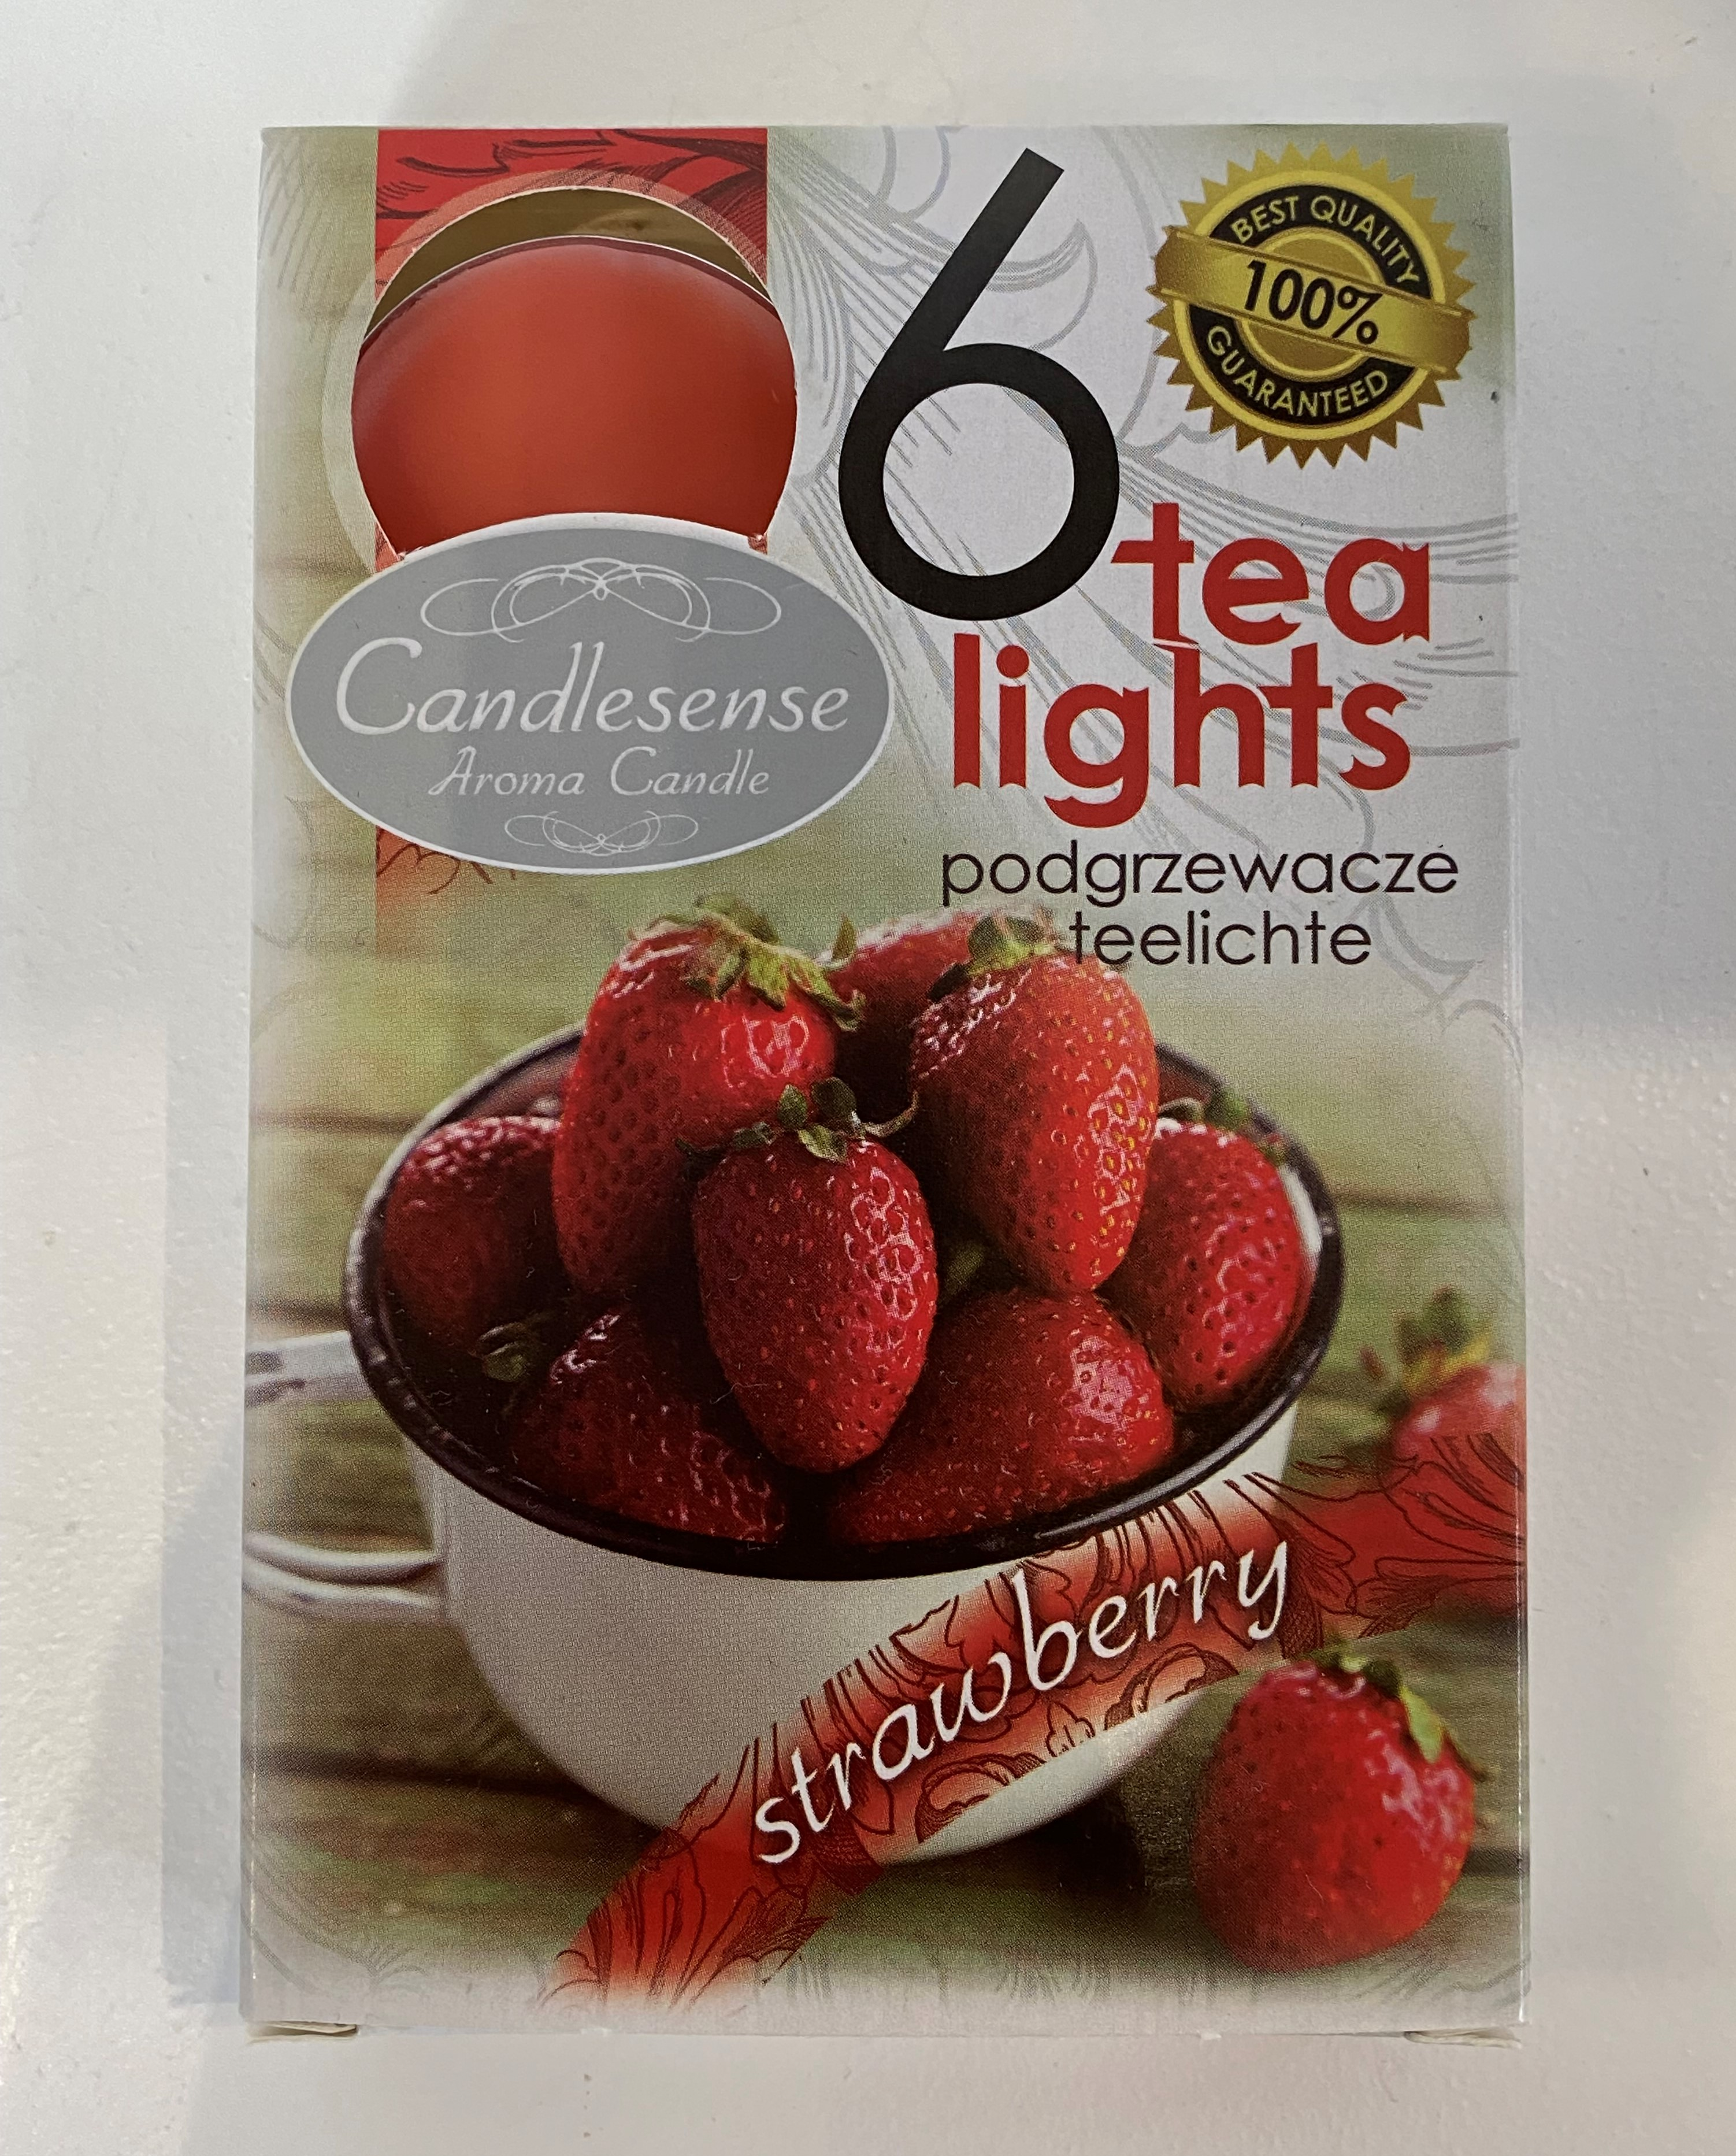 6 Scented Tea Lights - Strawberry